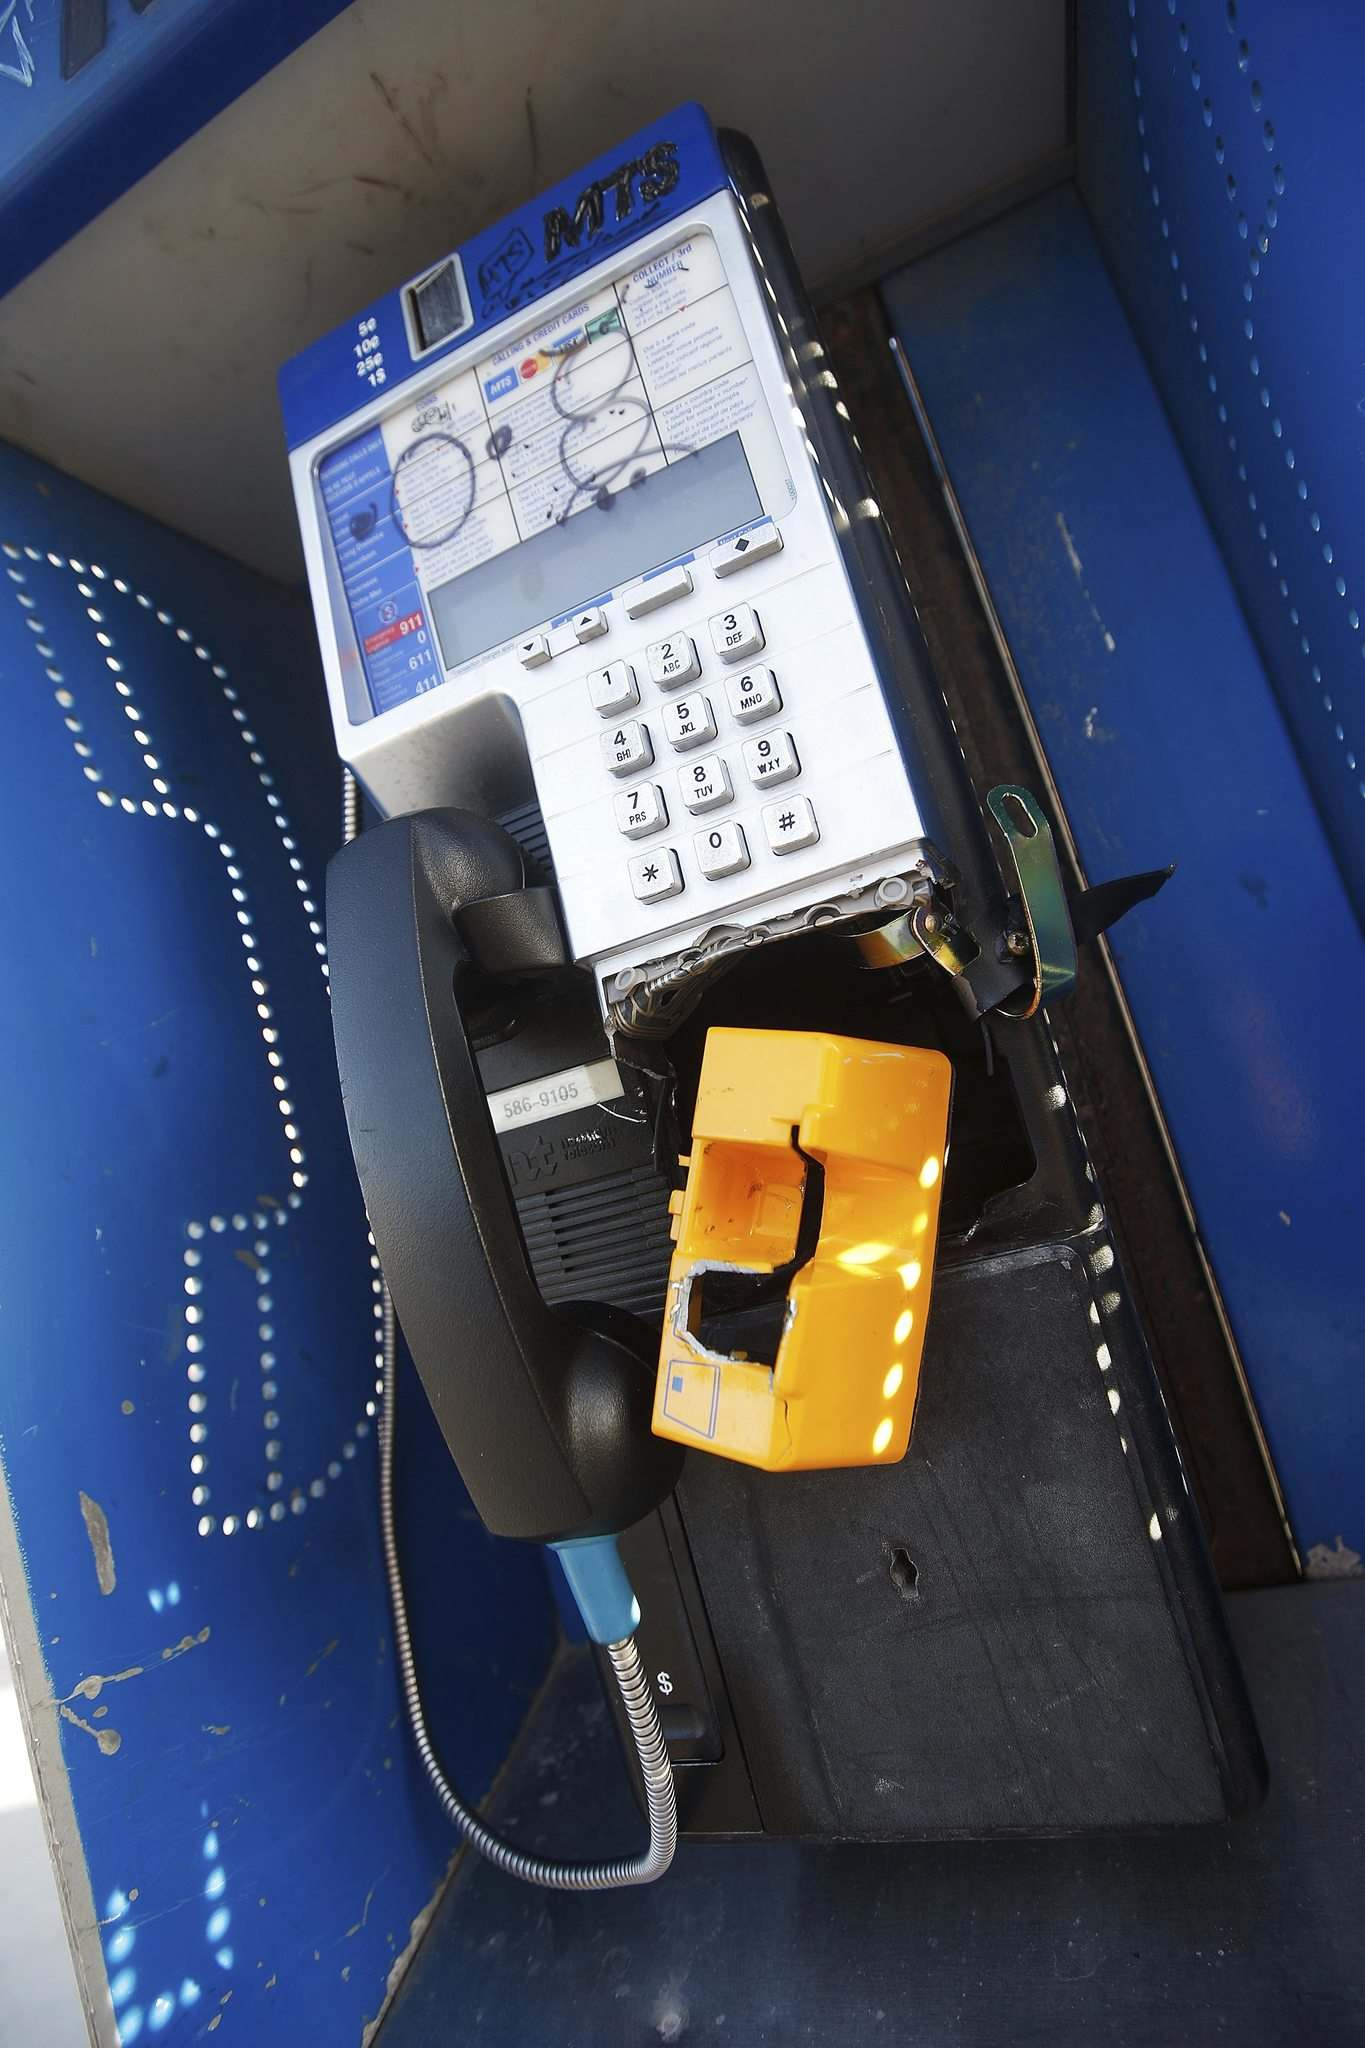 JOHN WOODS / WINNIPEG FREE PRESS</p><p>Some pay phones have been smashed, likely in an attempt to get at the coins inside.</p>